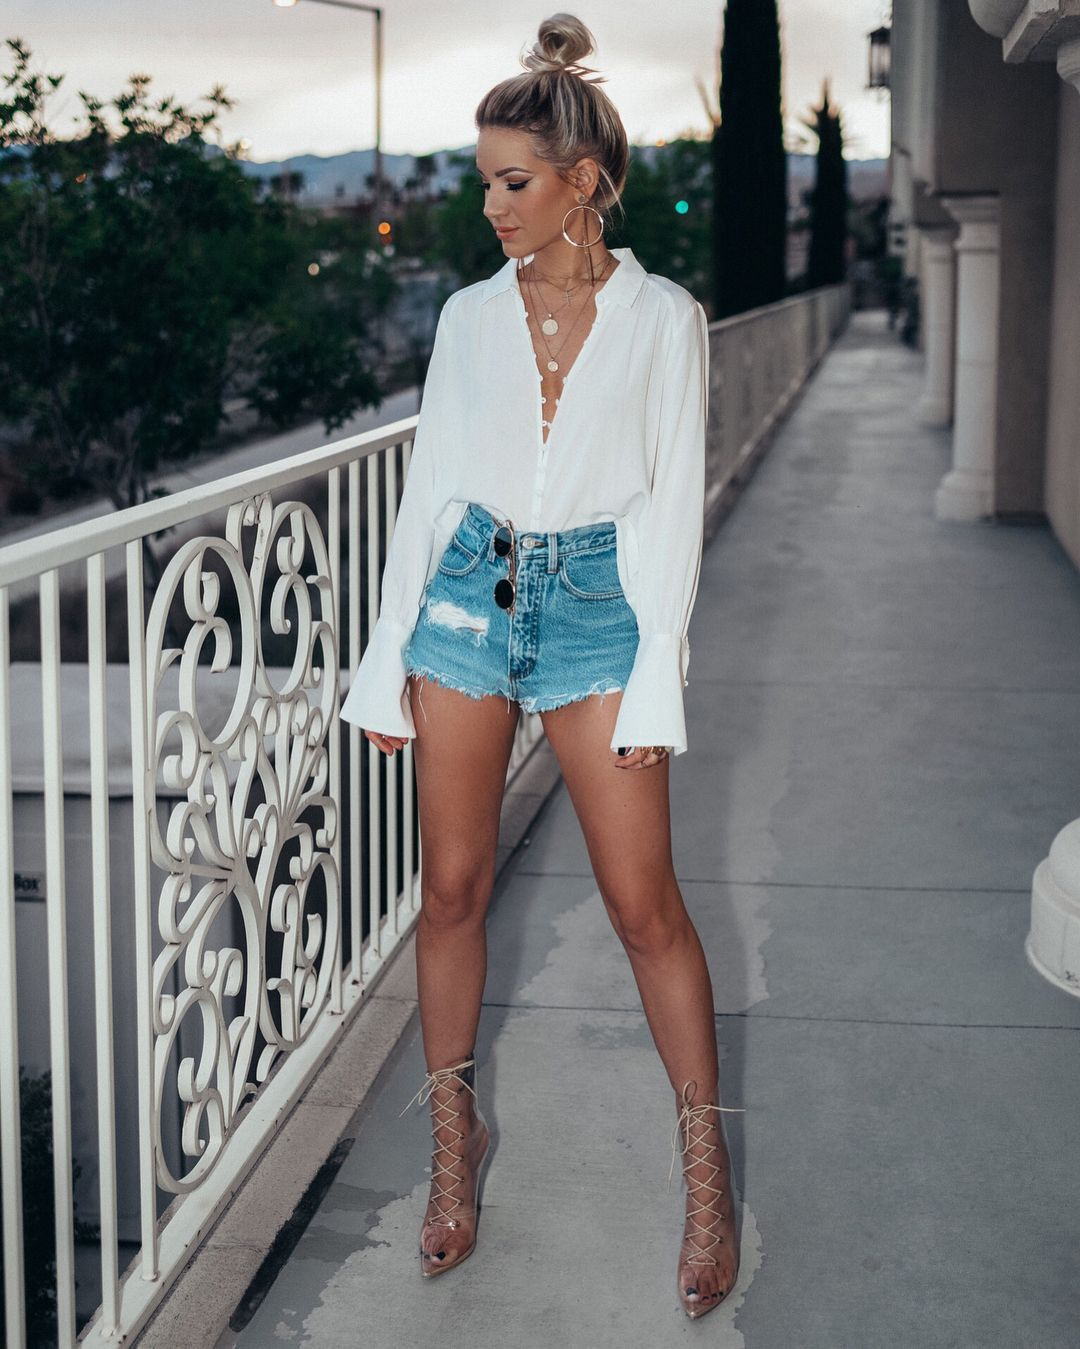 Pin By Greg On Legs Shorts Outfits Women Casual Summer Outfits Summer Shorts Outfits [ 1349 x 1080 Pixel ]